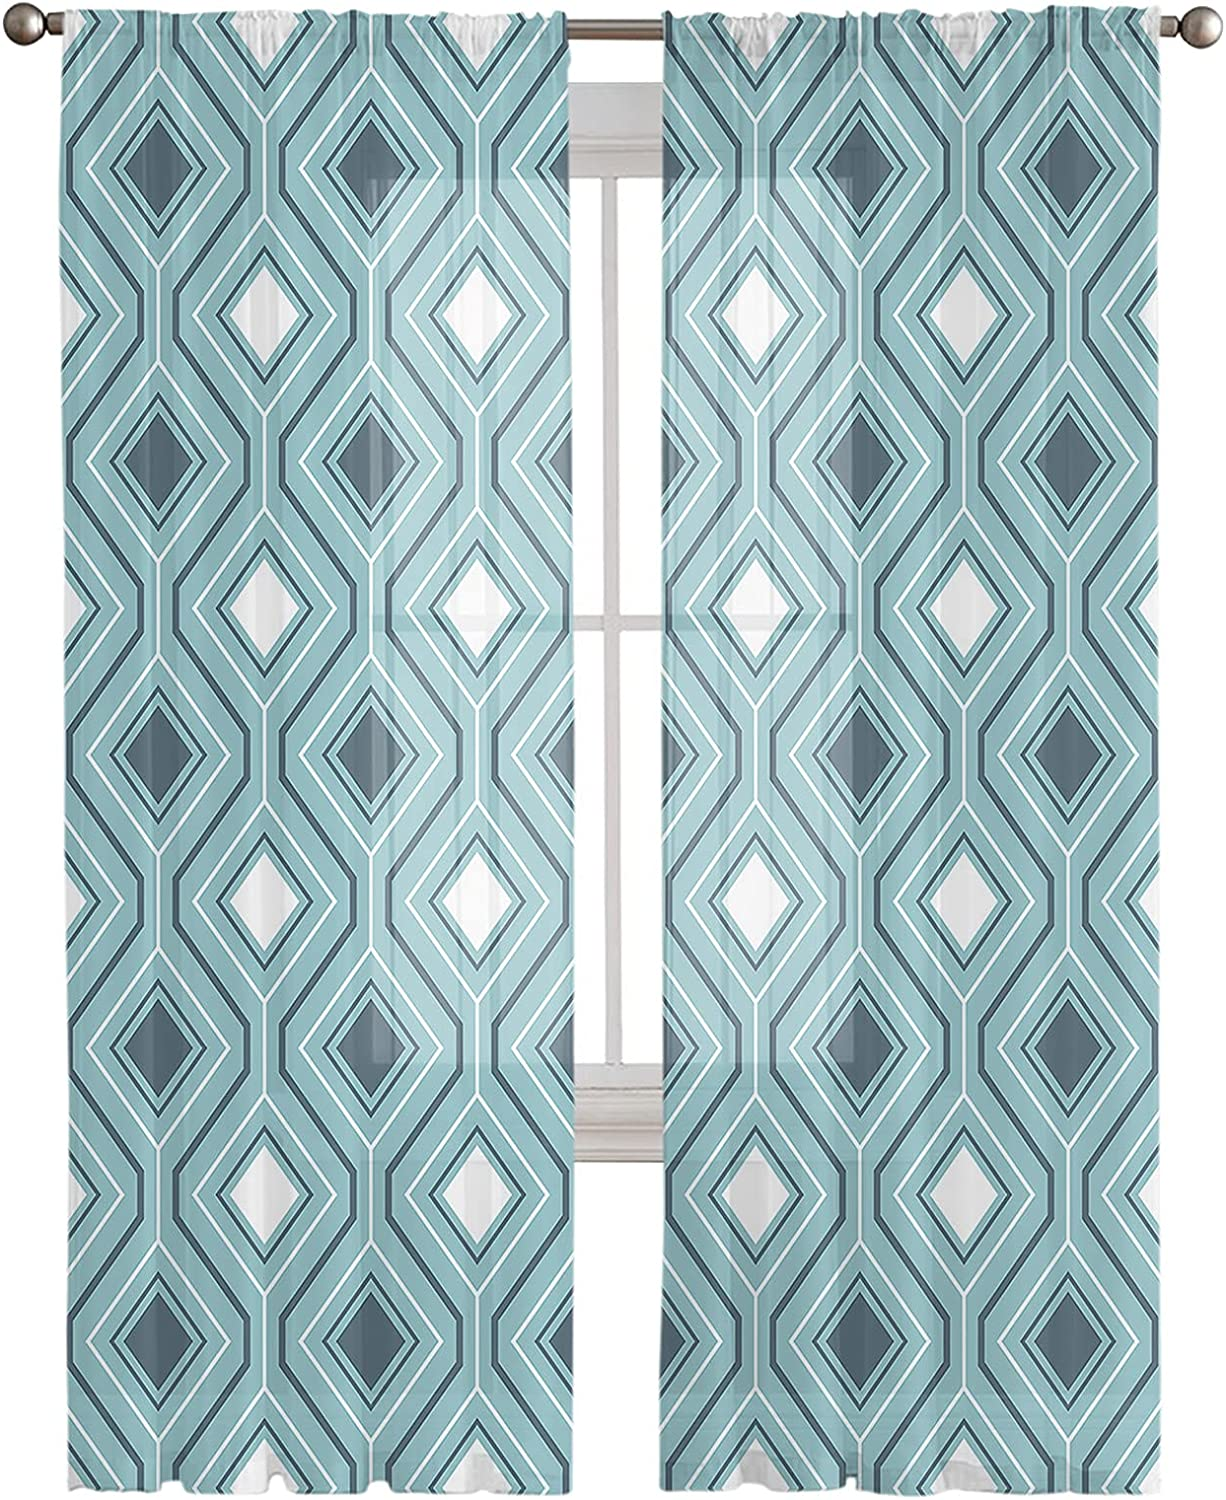 Sheer Curtains 72 Inches Sales Long OFFicial site Panels Teal Geomrtric Pattern 2